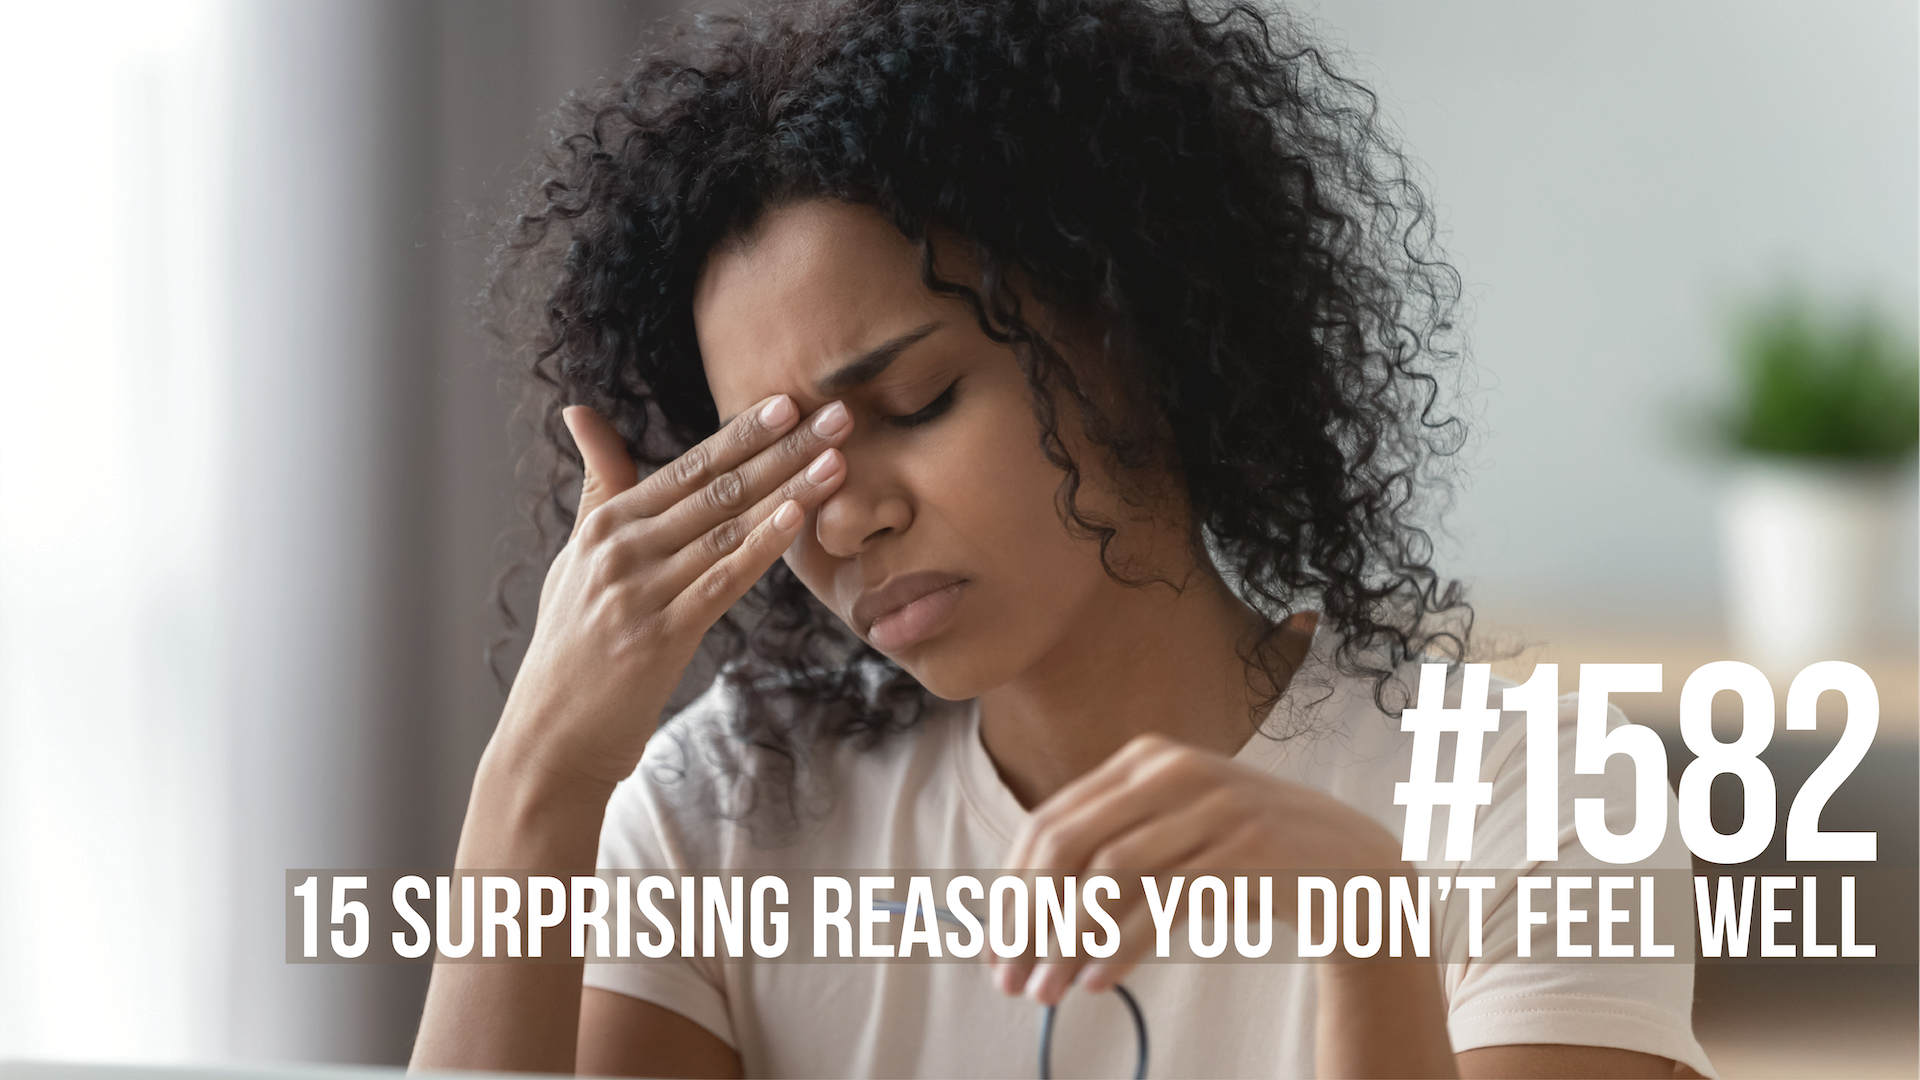 1582: 15 Surprising Reasons You Don't Feel Well